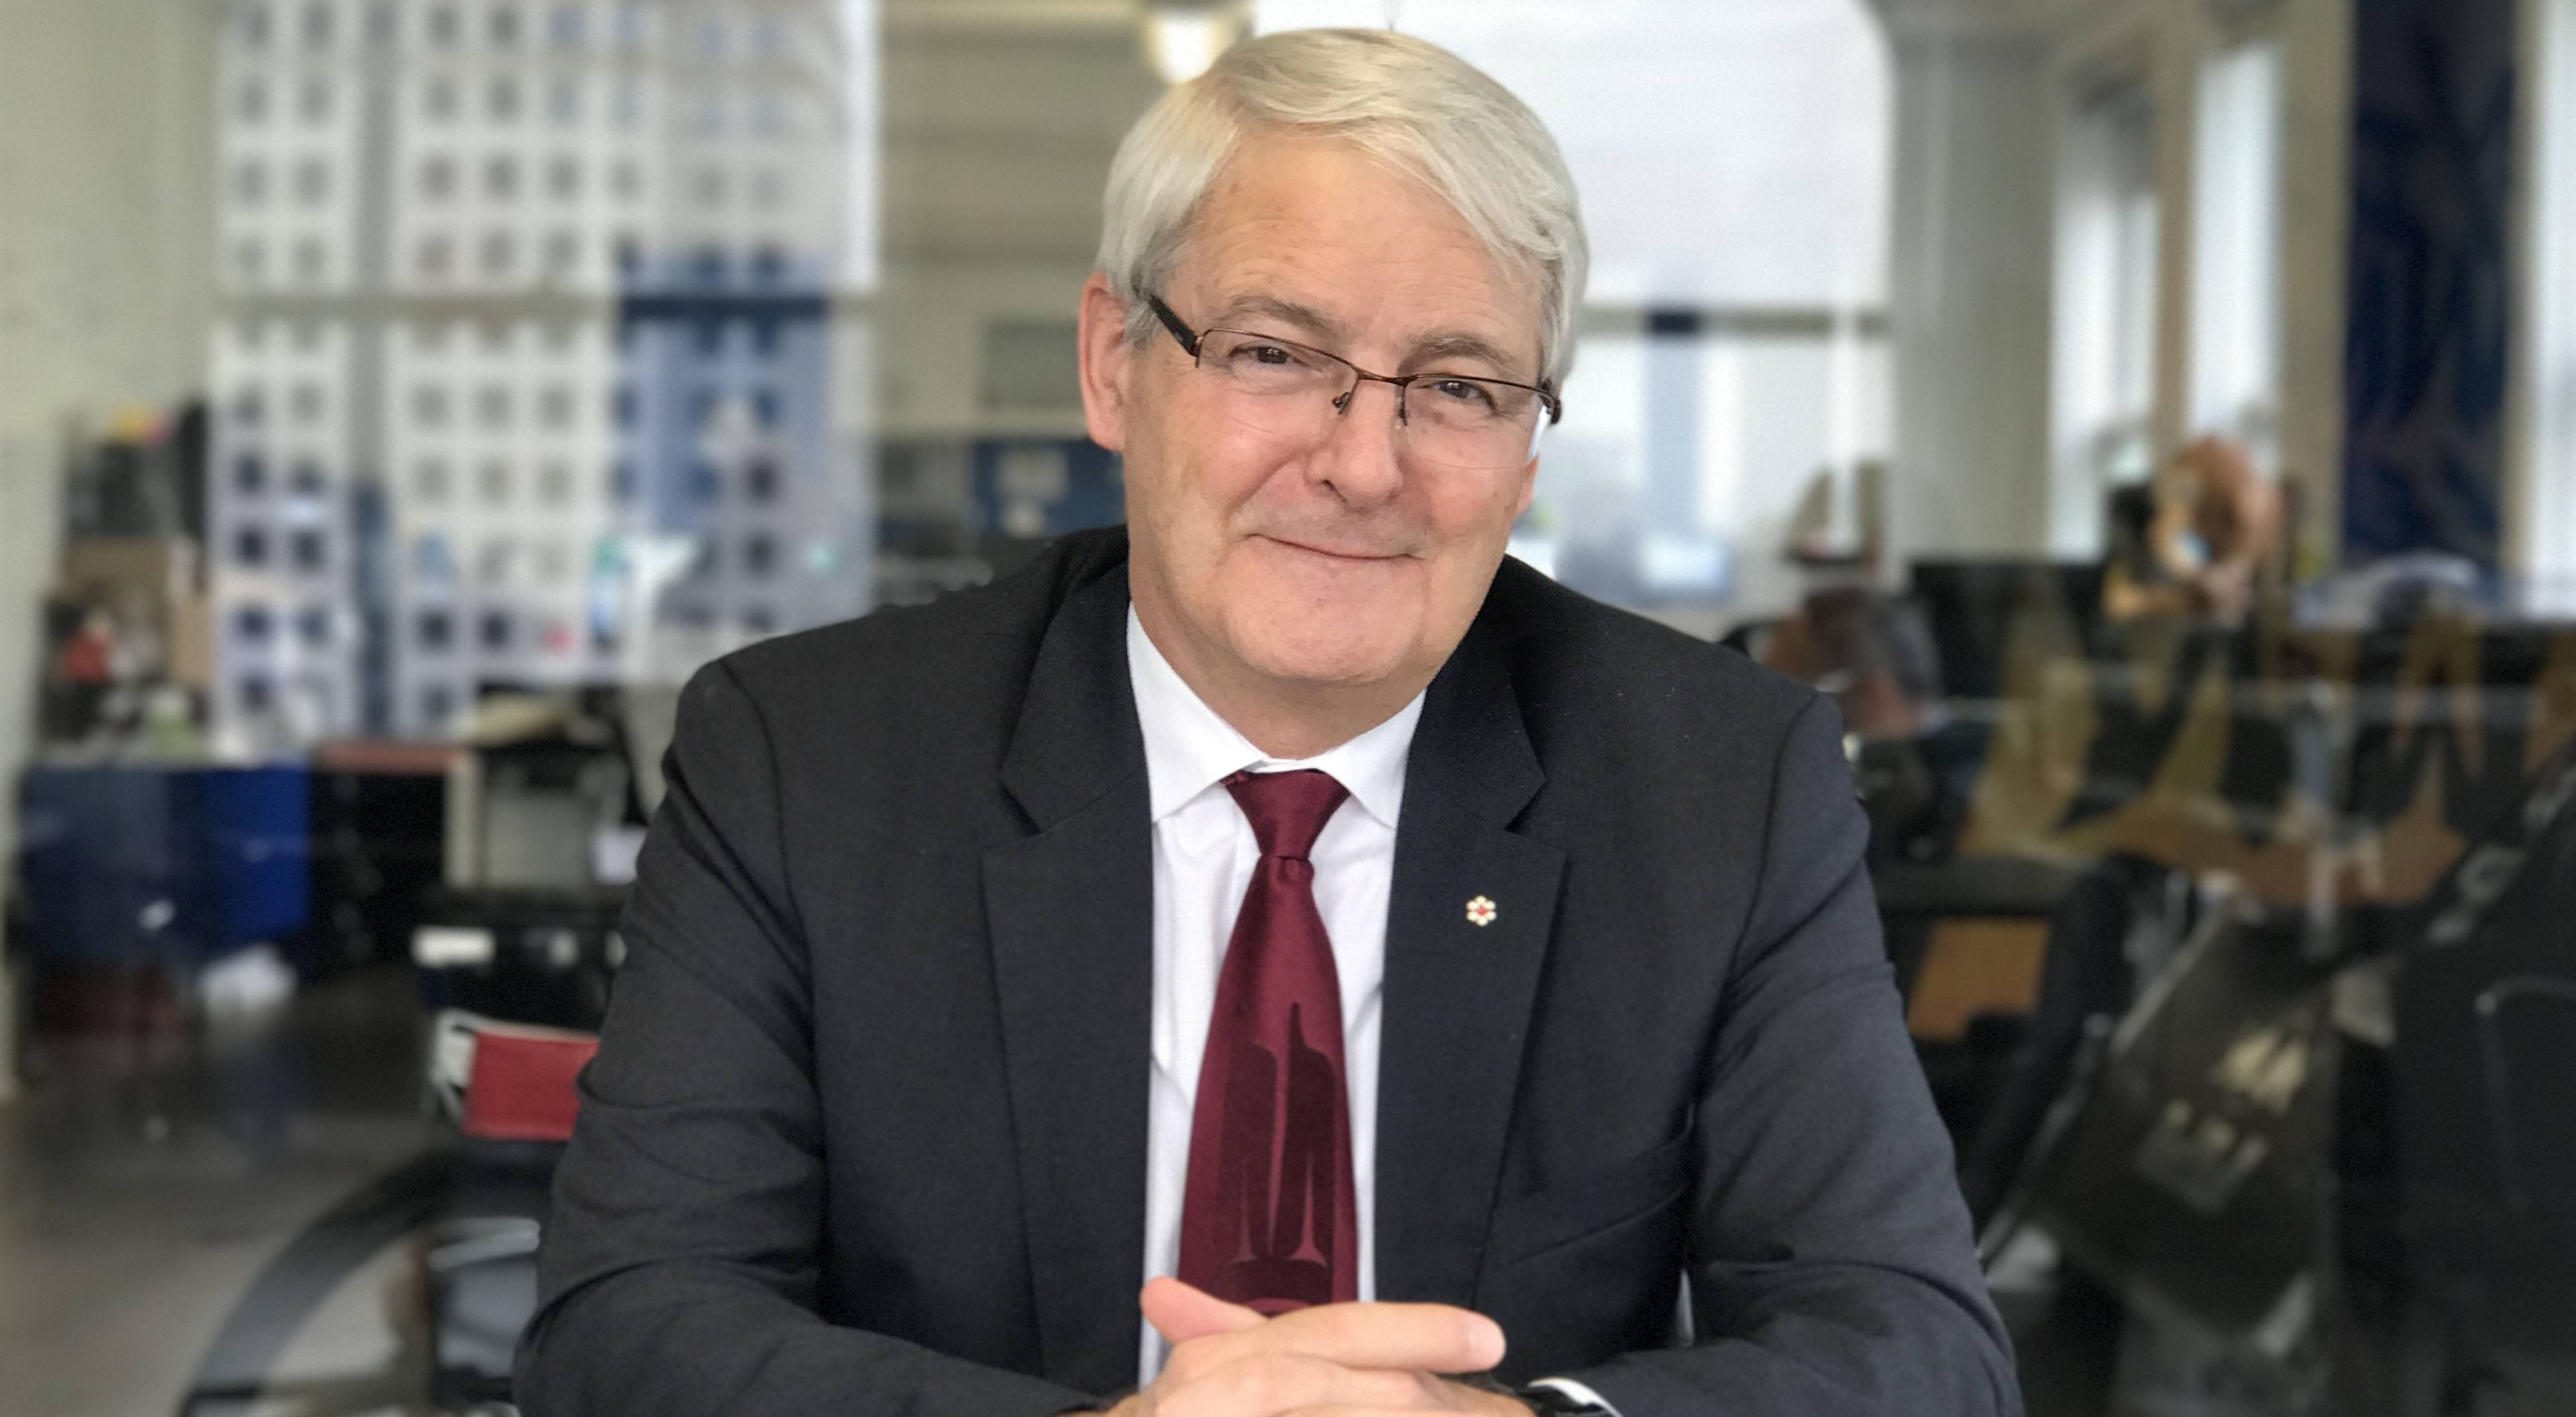 Kinder Morgan pipeline approval is for 'greater good,' says Transport Minister Marc Garneau